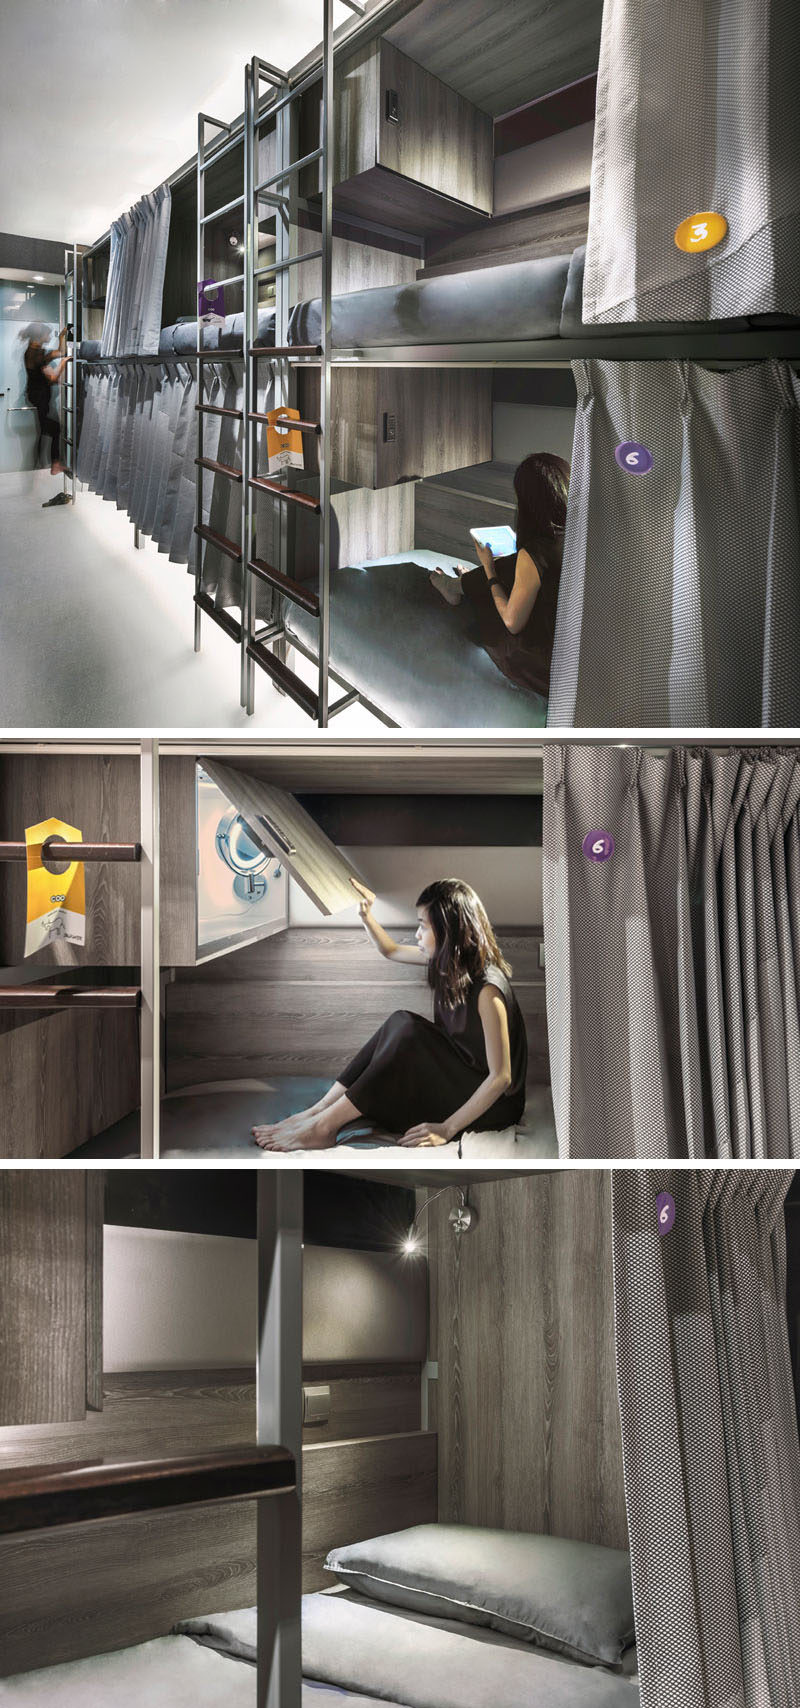 This New Hostel In Singapore Is Designed To Appeal To Millennials 5